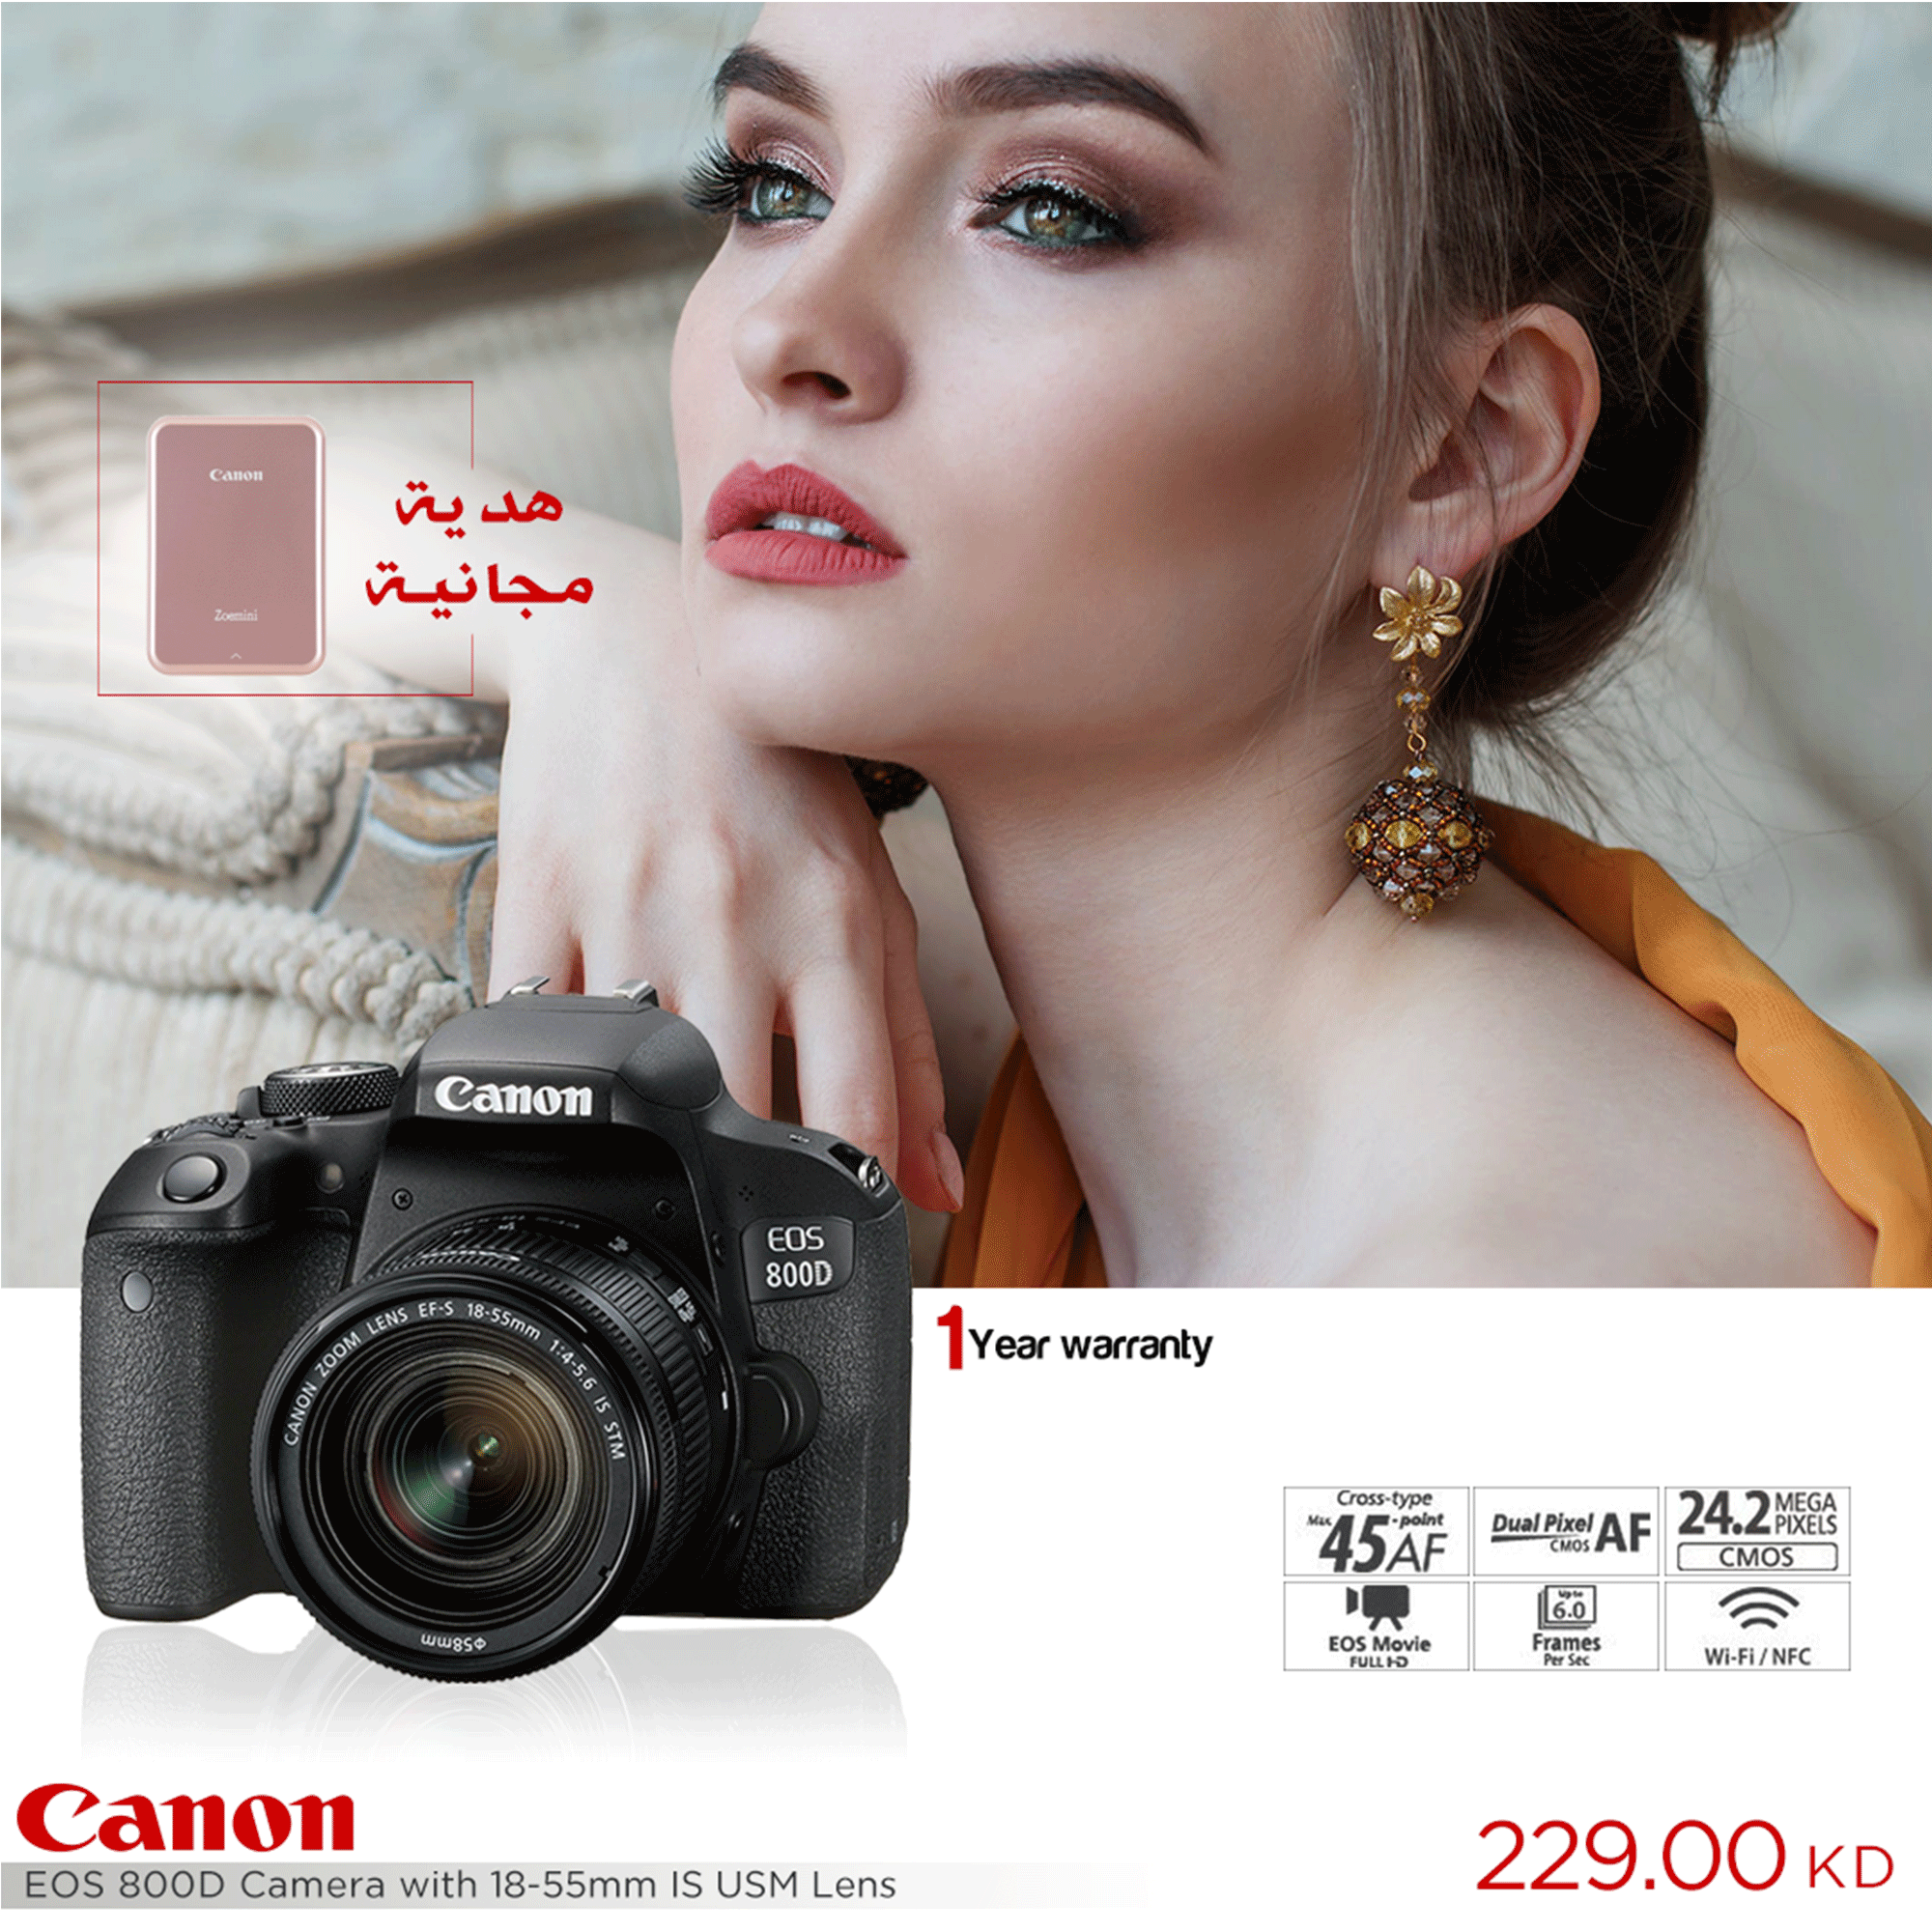 CANON EOS 800D DSLR CAMERA WITH 18-55MM LENS + FREE canon Zoemini Printer